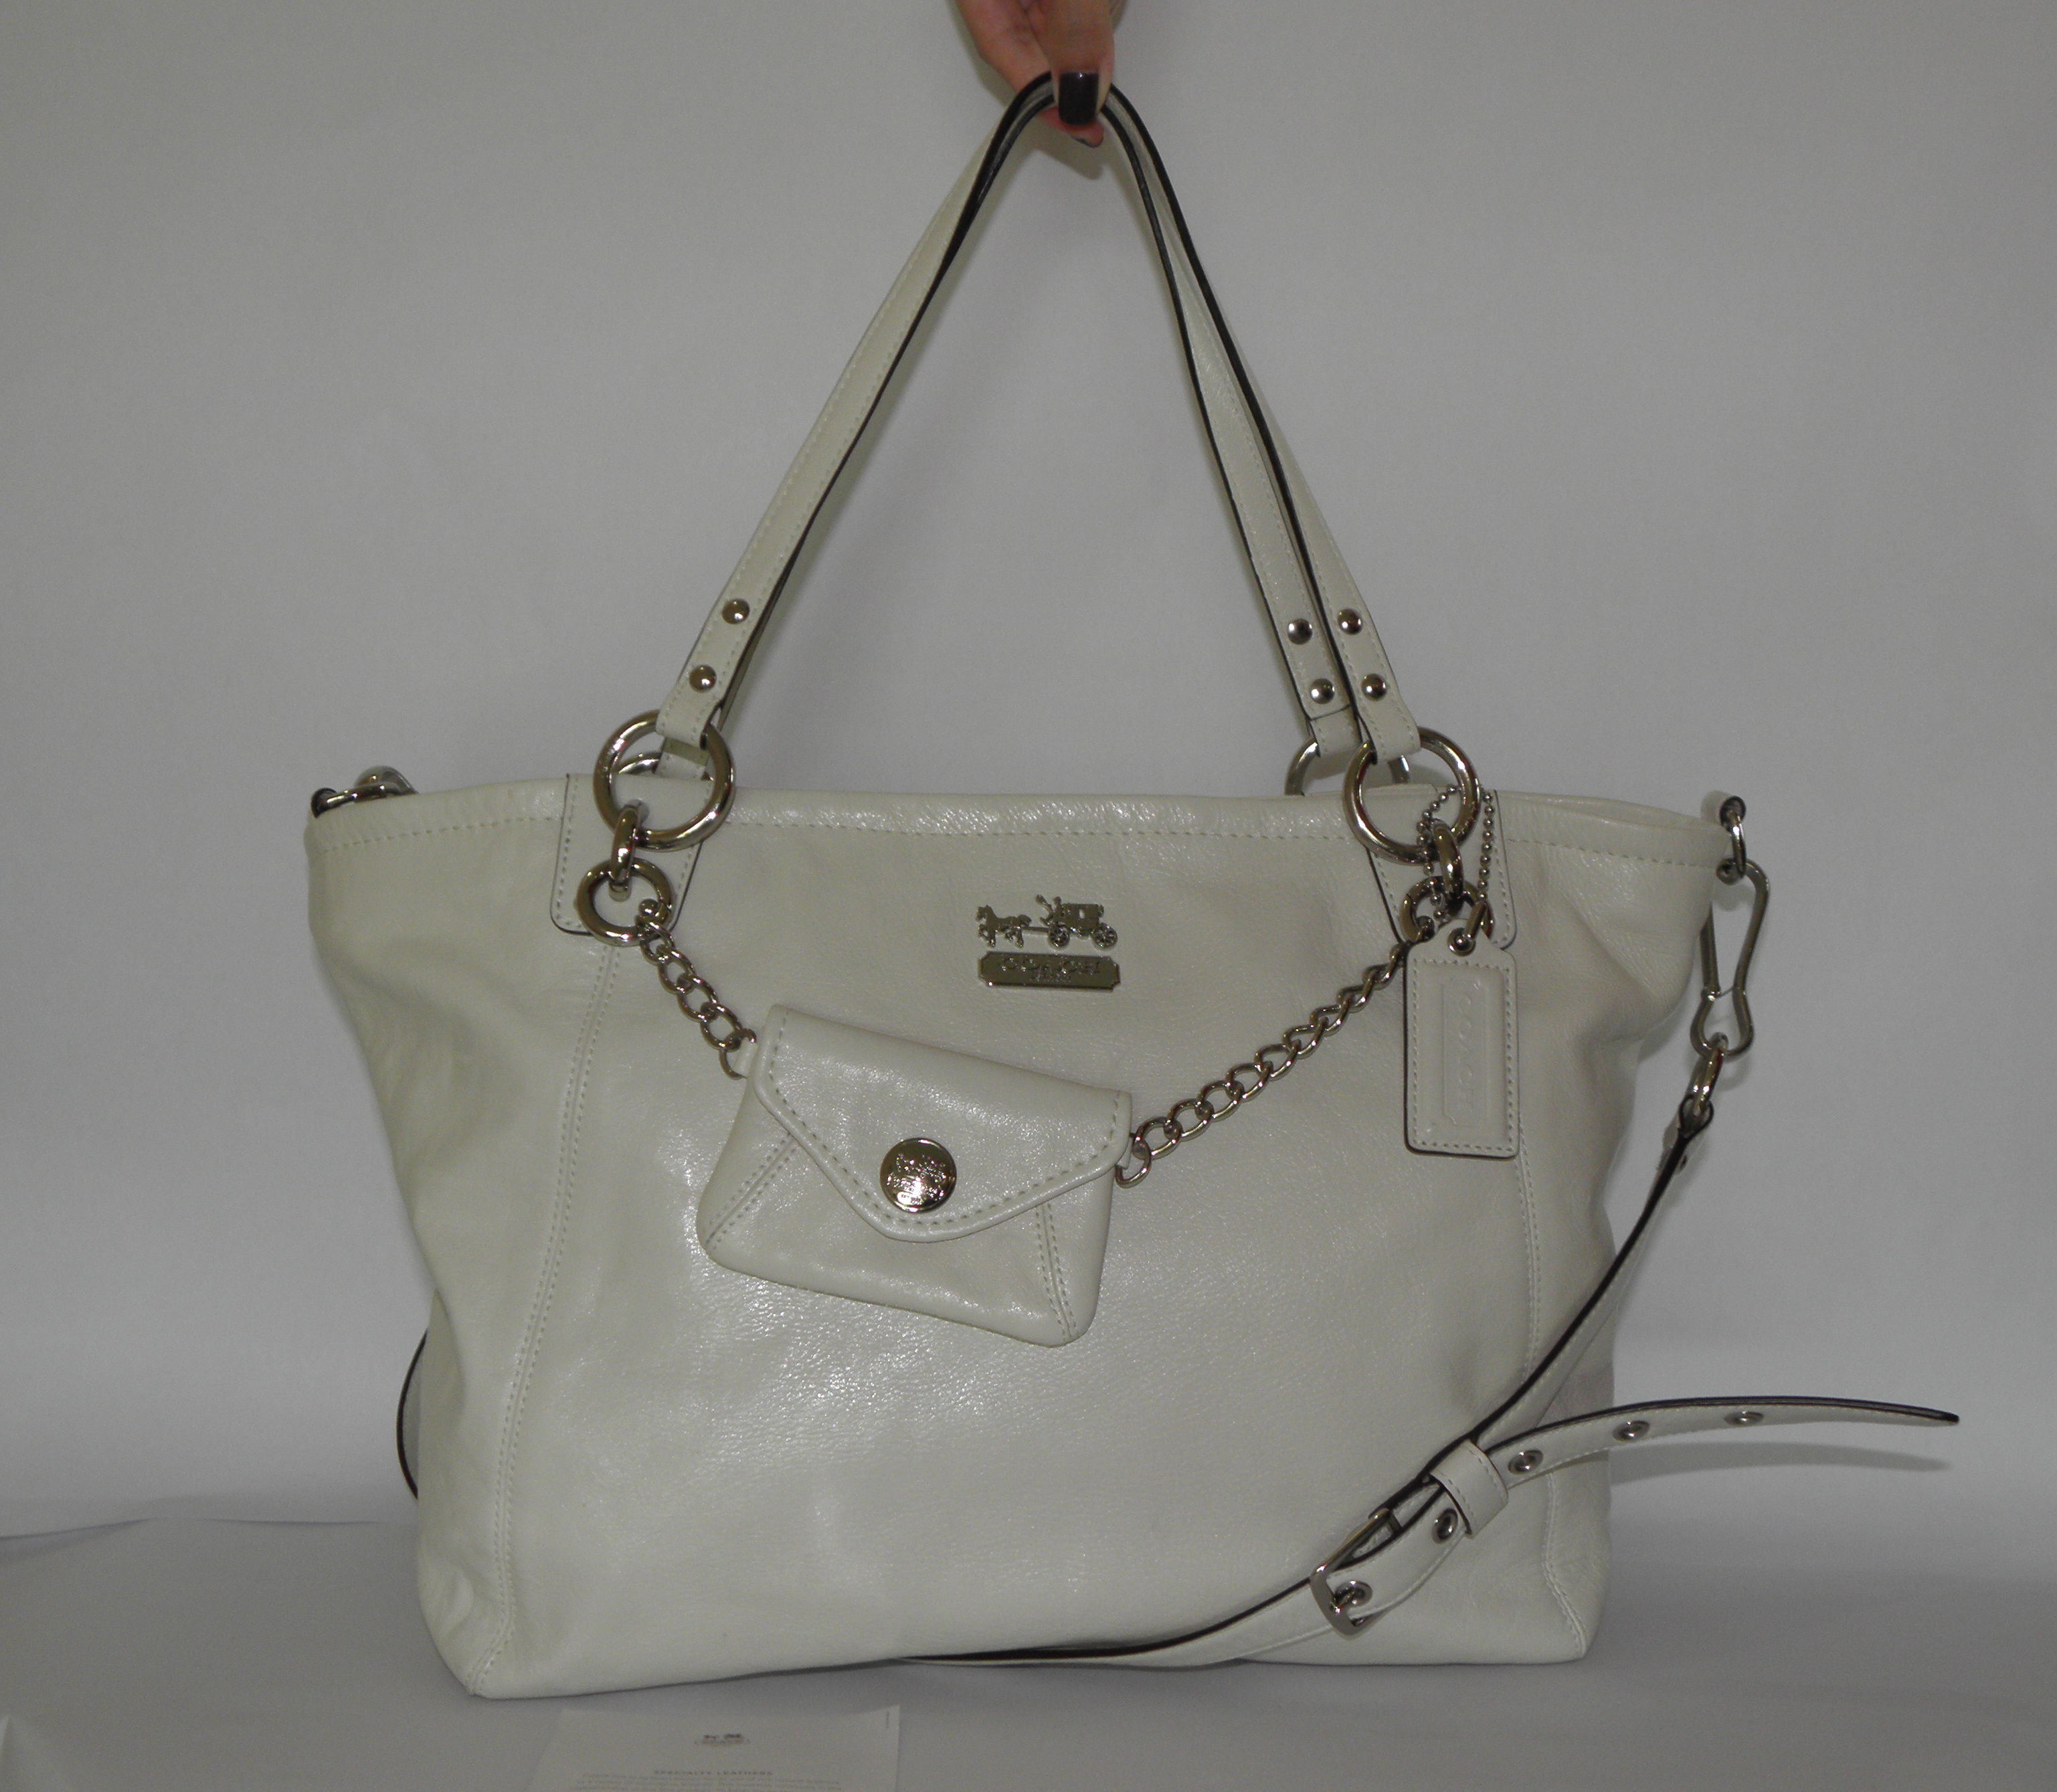 BNWT Coach Leather Charm Large Tote in Parchment  14832  2960c2608a3be